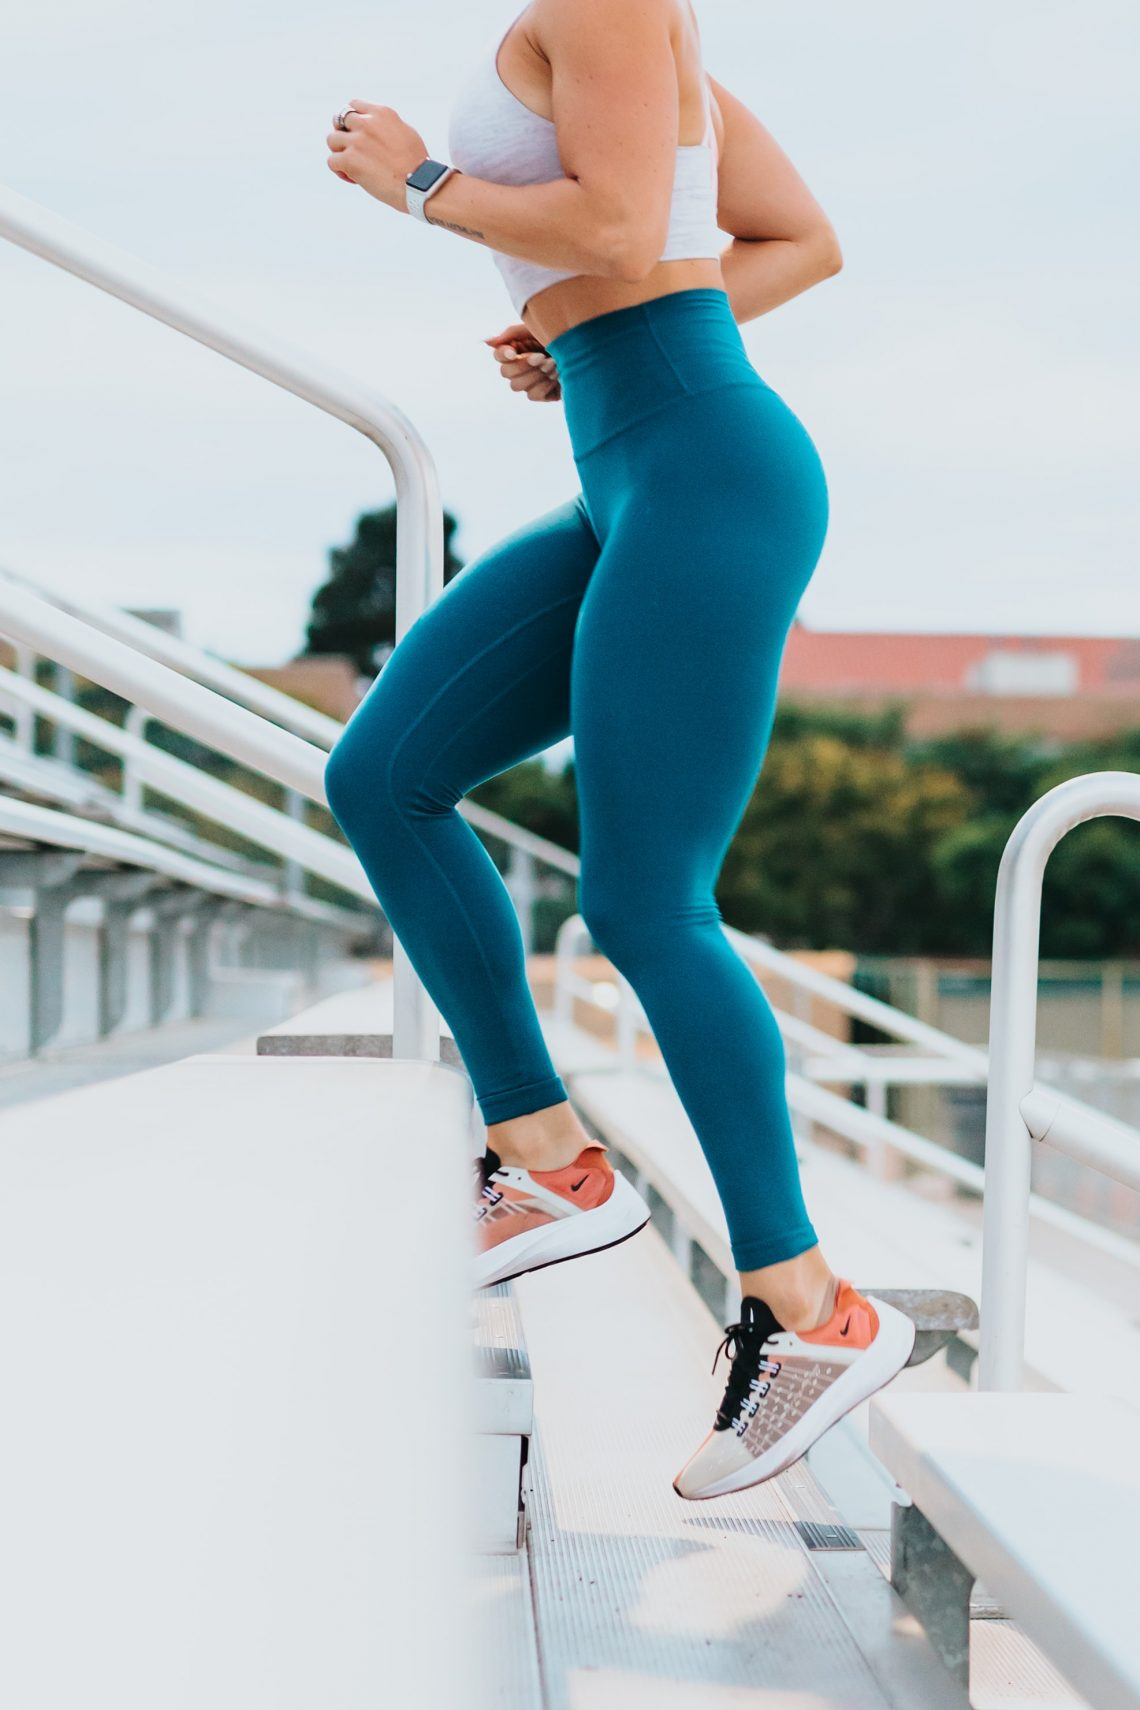 woman running up stairs for workout